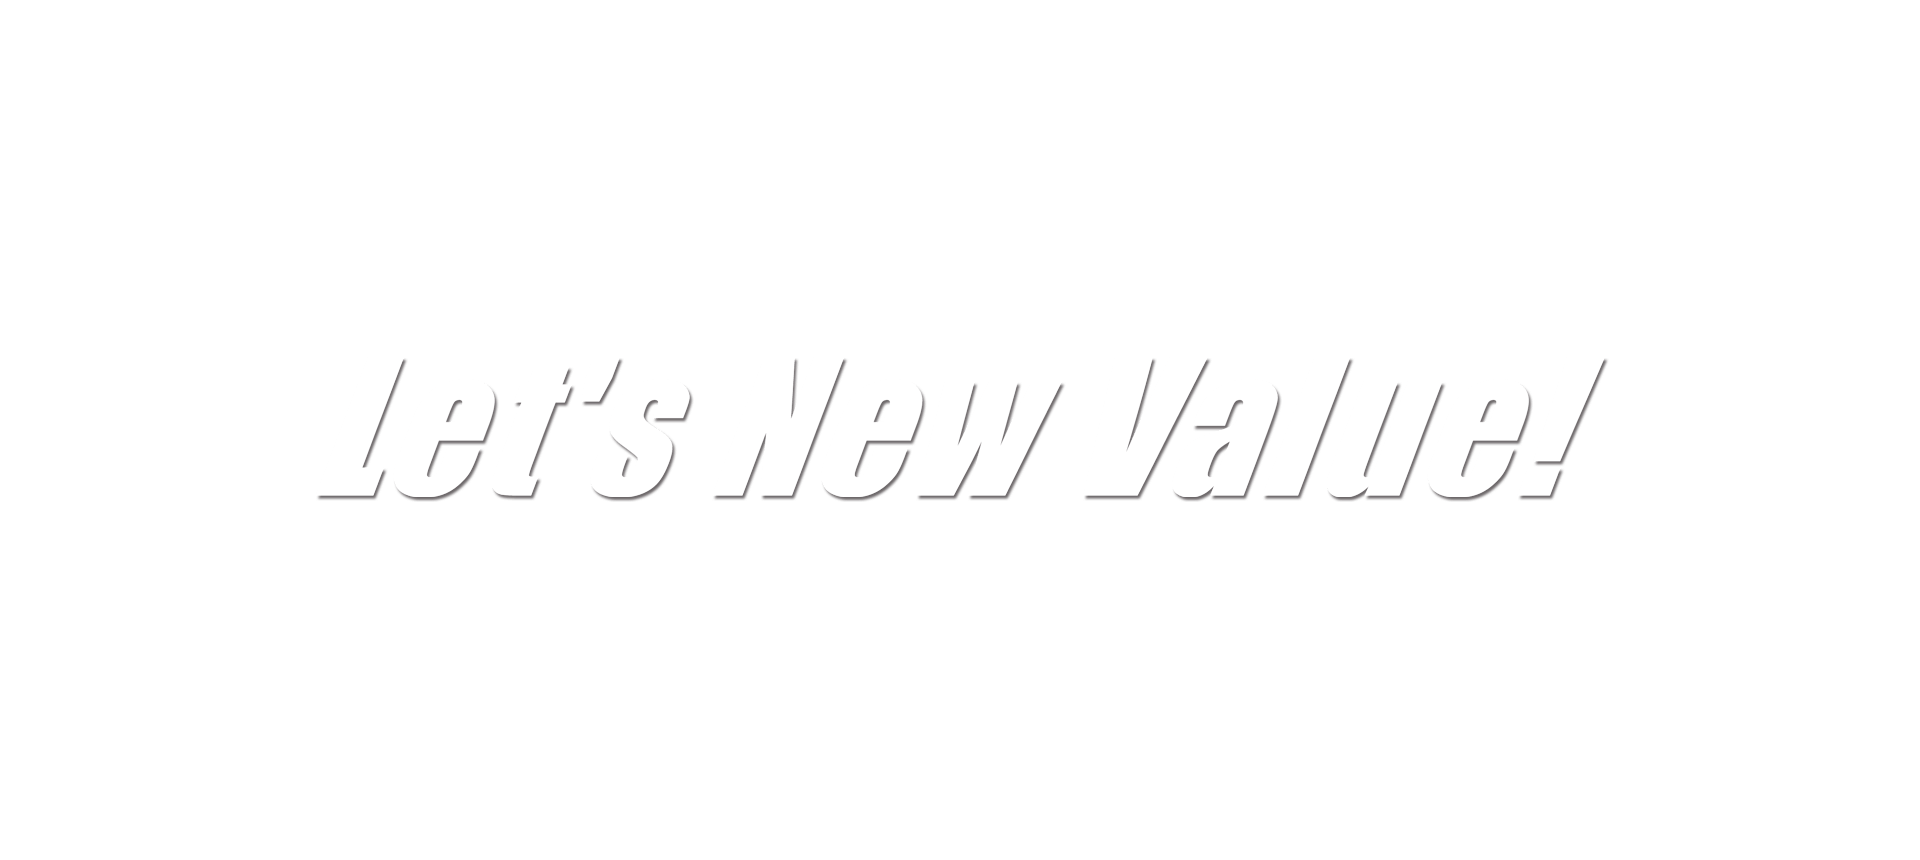 Let's New Value! 新たなる価値創造のための情報化戦略・技術戦略・人財戦略を実現します。